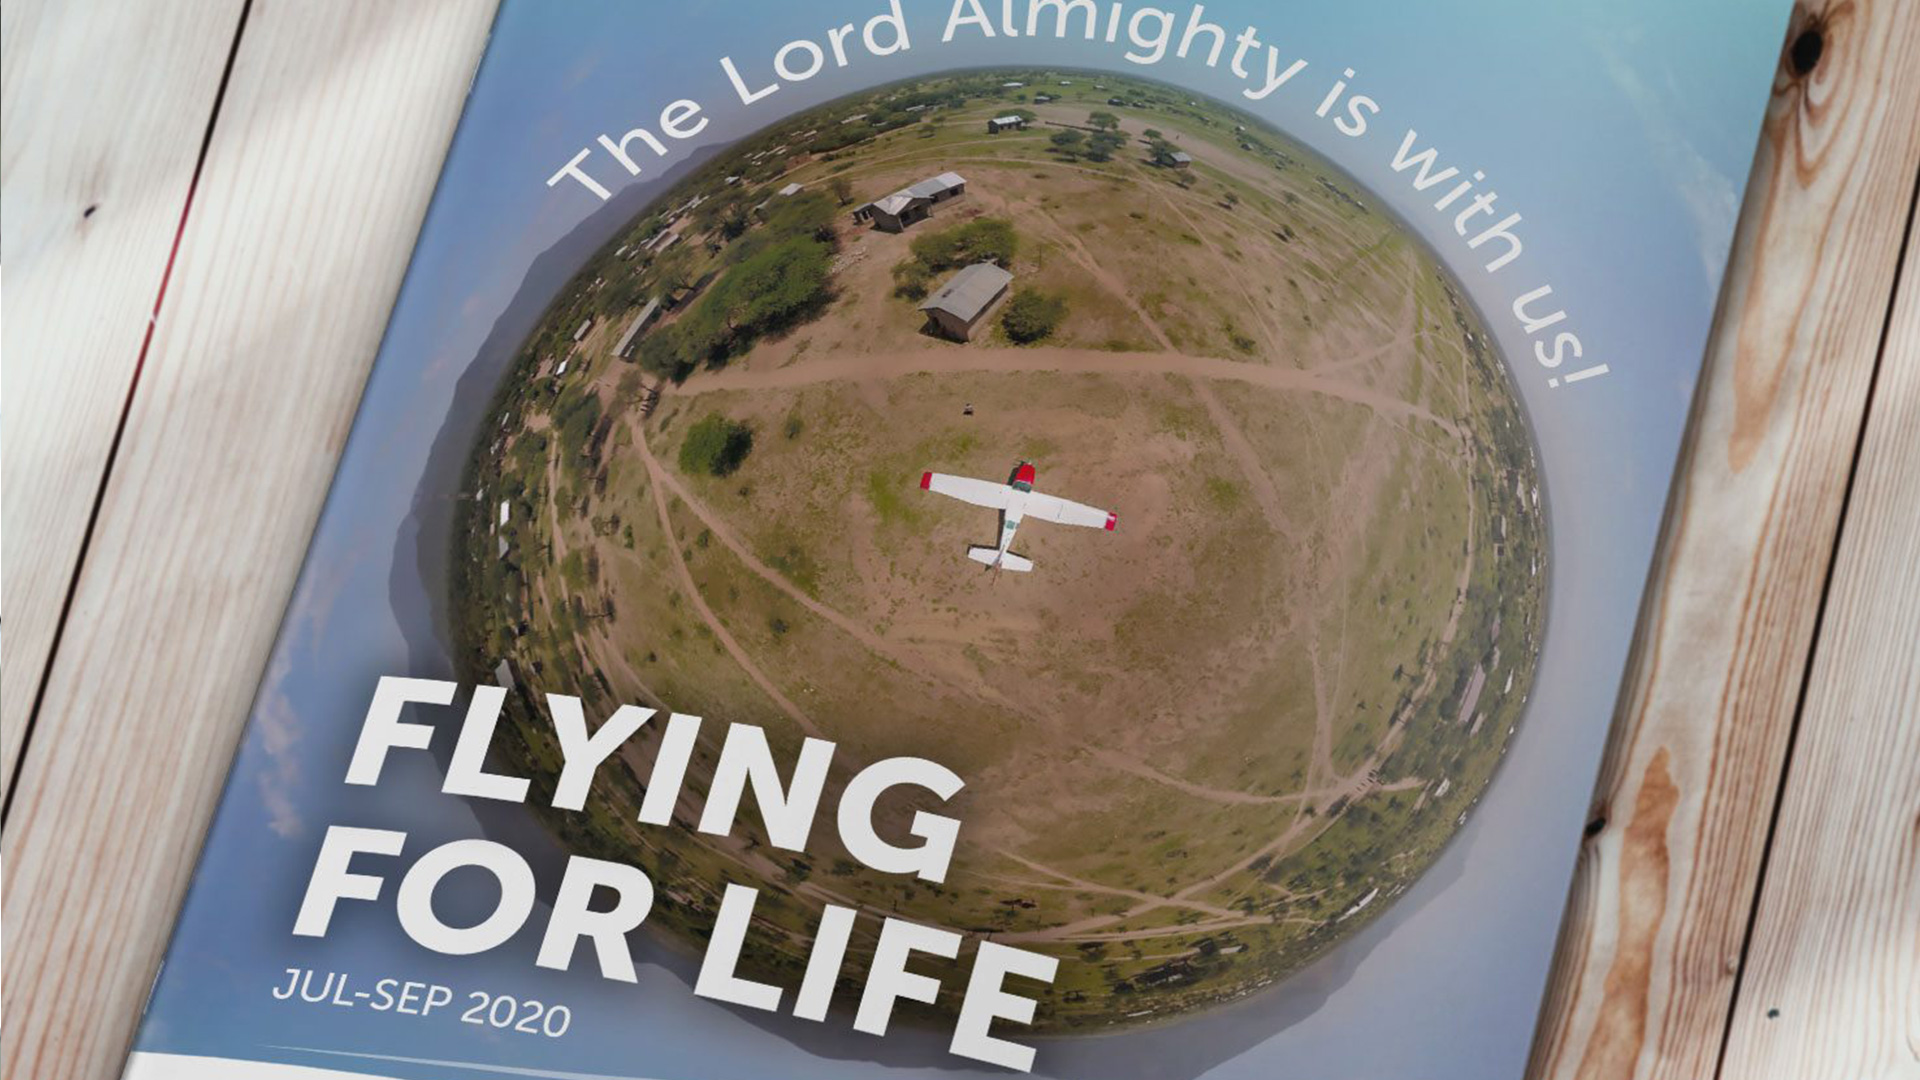 Flying For Life - July-Sep 2020